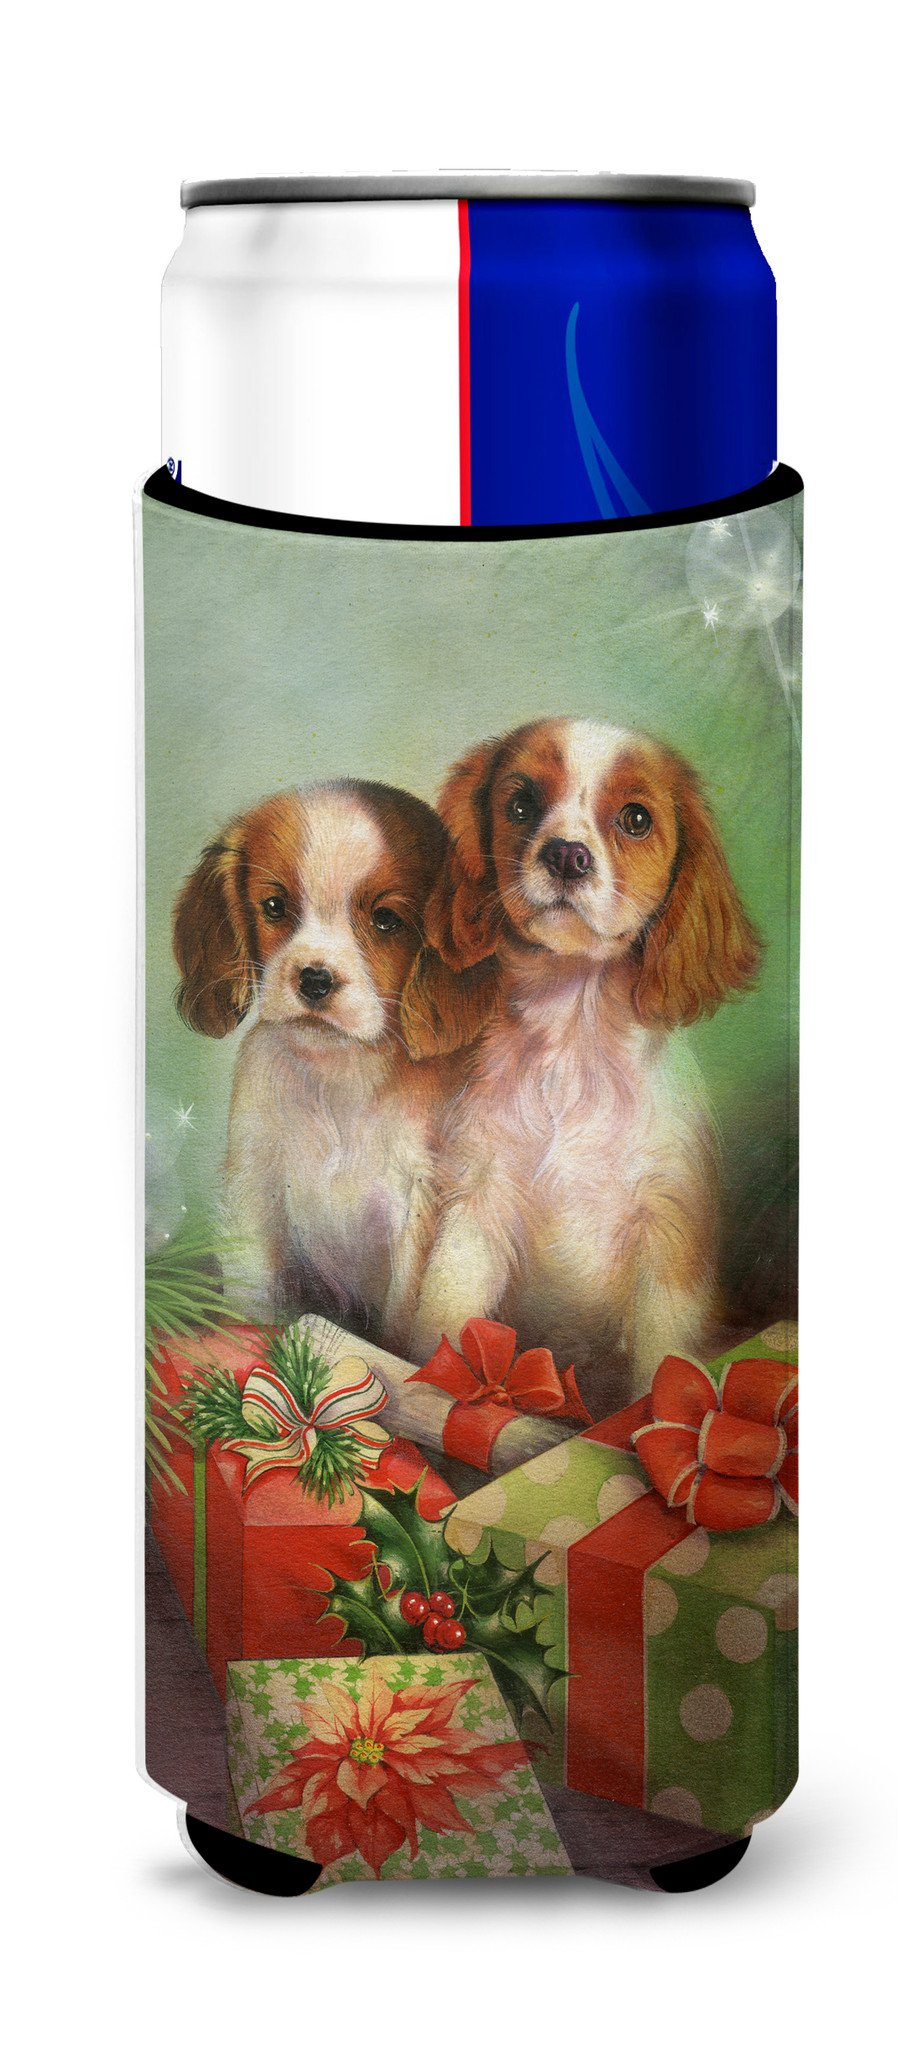 Cavalier Spaniels and Christmas Presents Ultra Beverage Insulators for slim cans SDSQ0303MUK by Caroline's Treasures